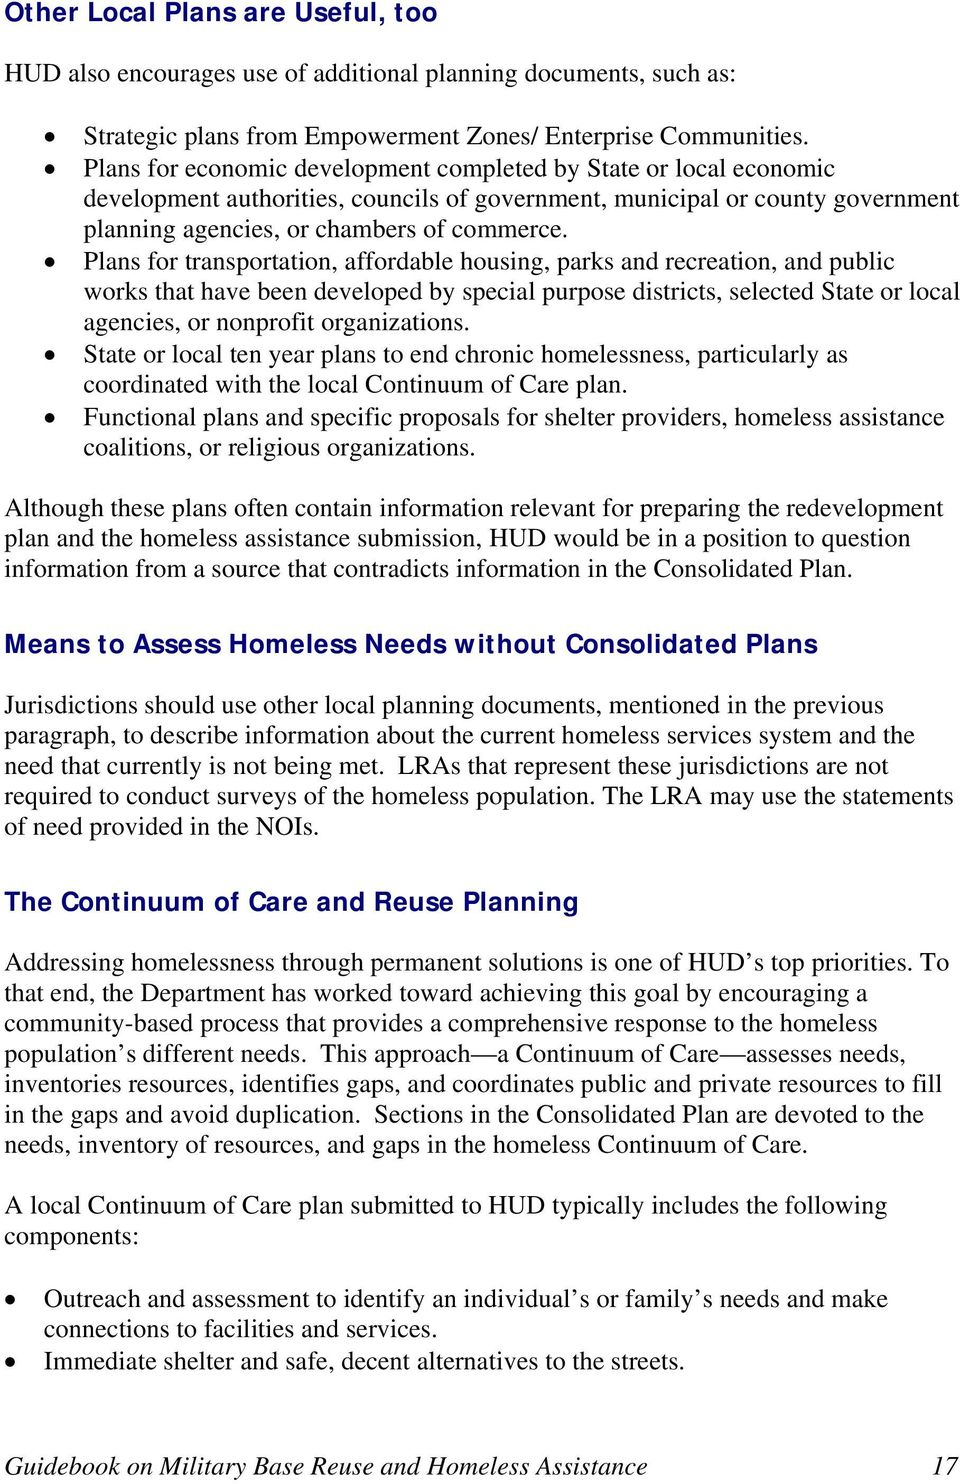 Plans for transportation, affordable housing, parks and recreation, and public works that have been developed by special purpose districts, selected State or local agencies, or nonprofit